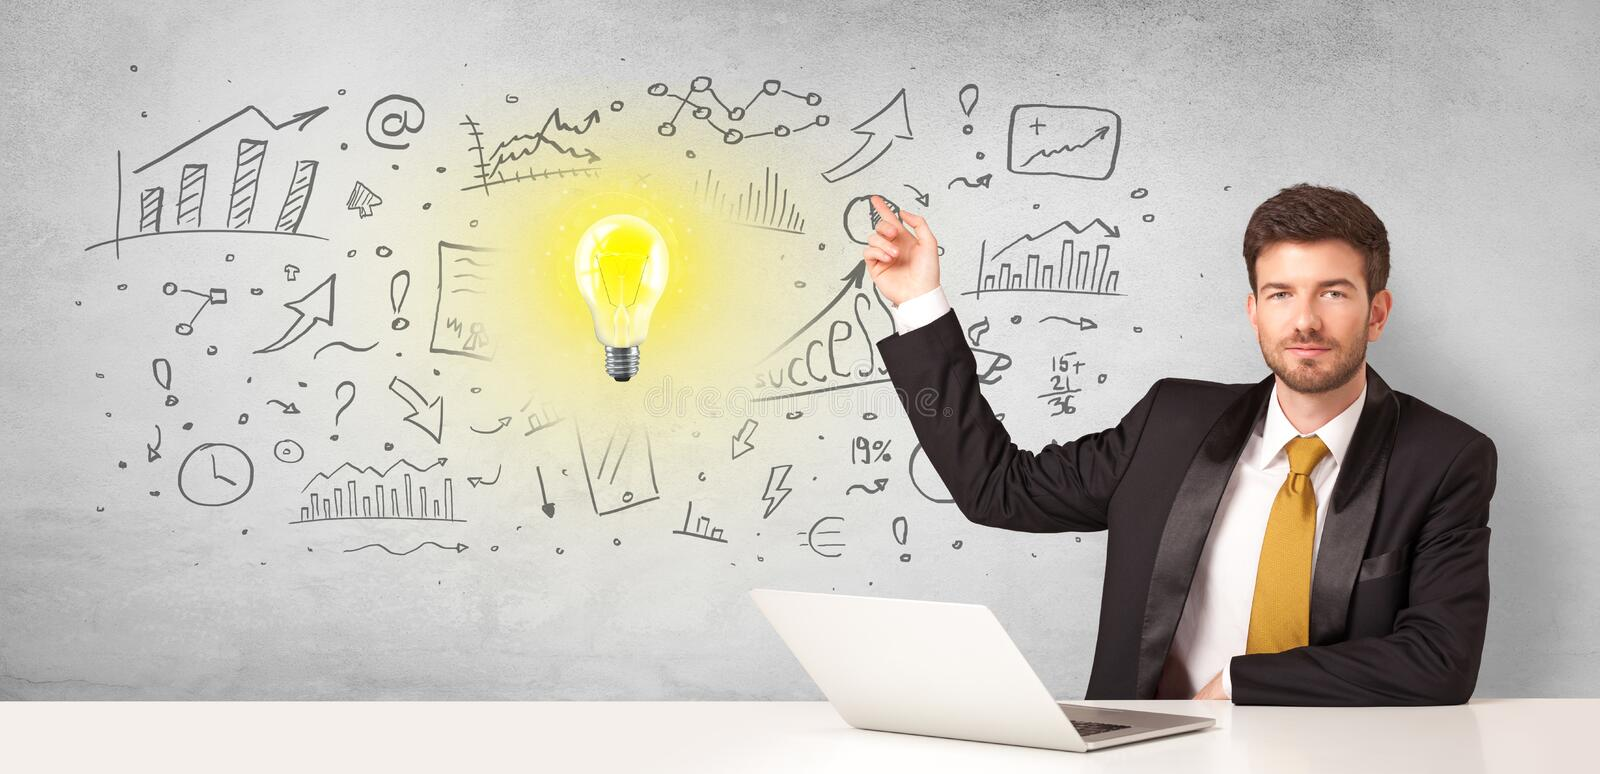 Business person with new idea concept. Young business person with new idea and workflow concept stock photo